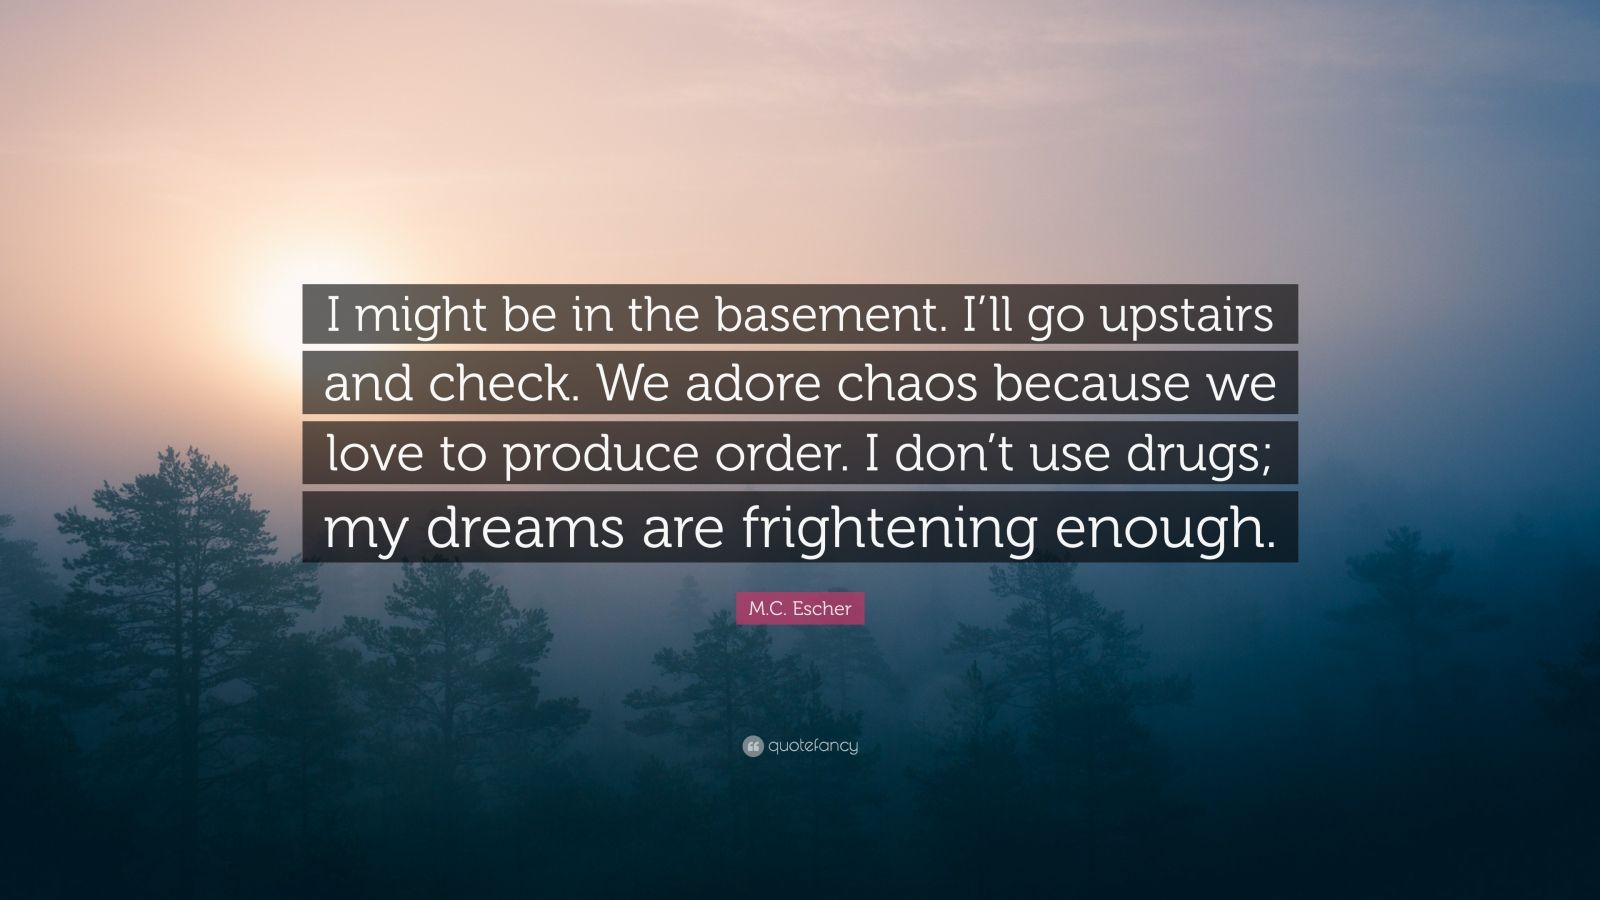 """M.C. Escher Quote: """"I might be in the basement. I'll go upstairs and check. We adore chaos because we love to produce order. I don't use drugs; my dreams are frightening enough."""""""